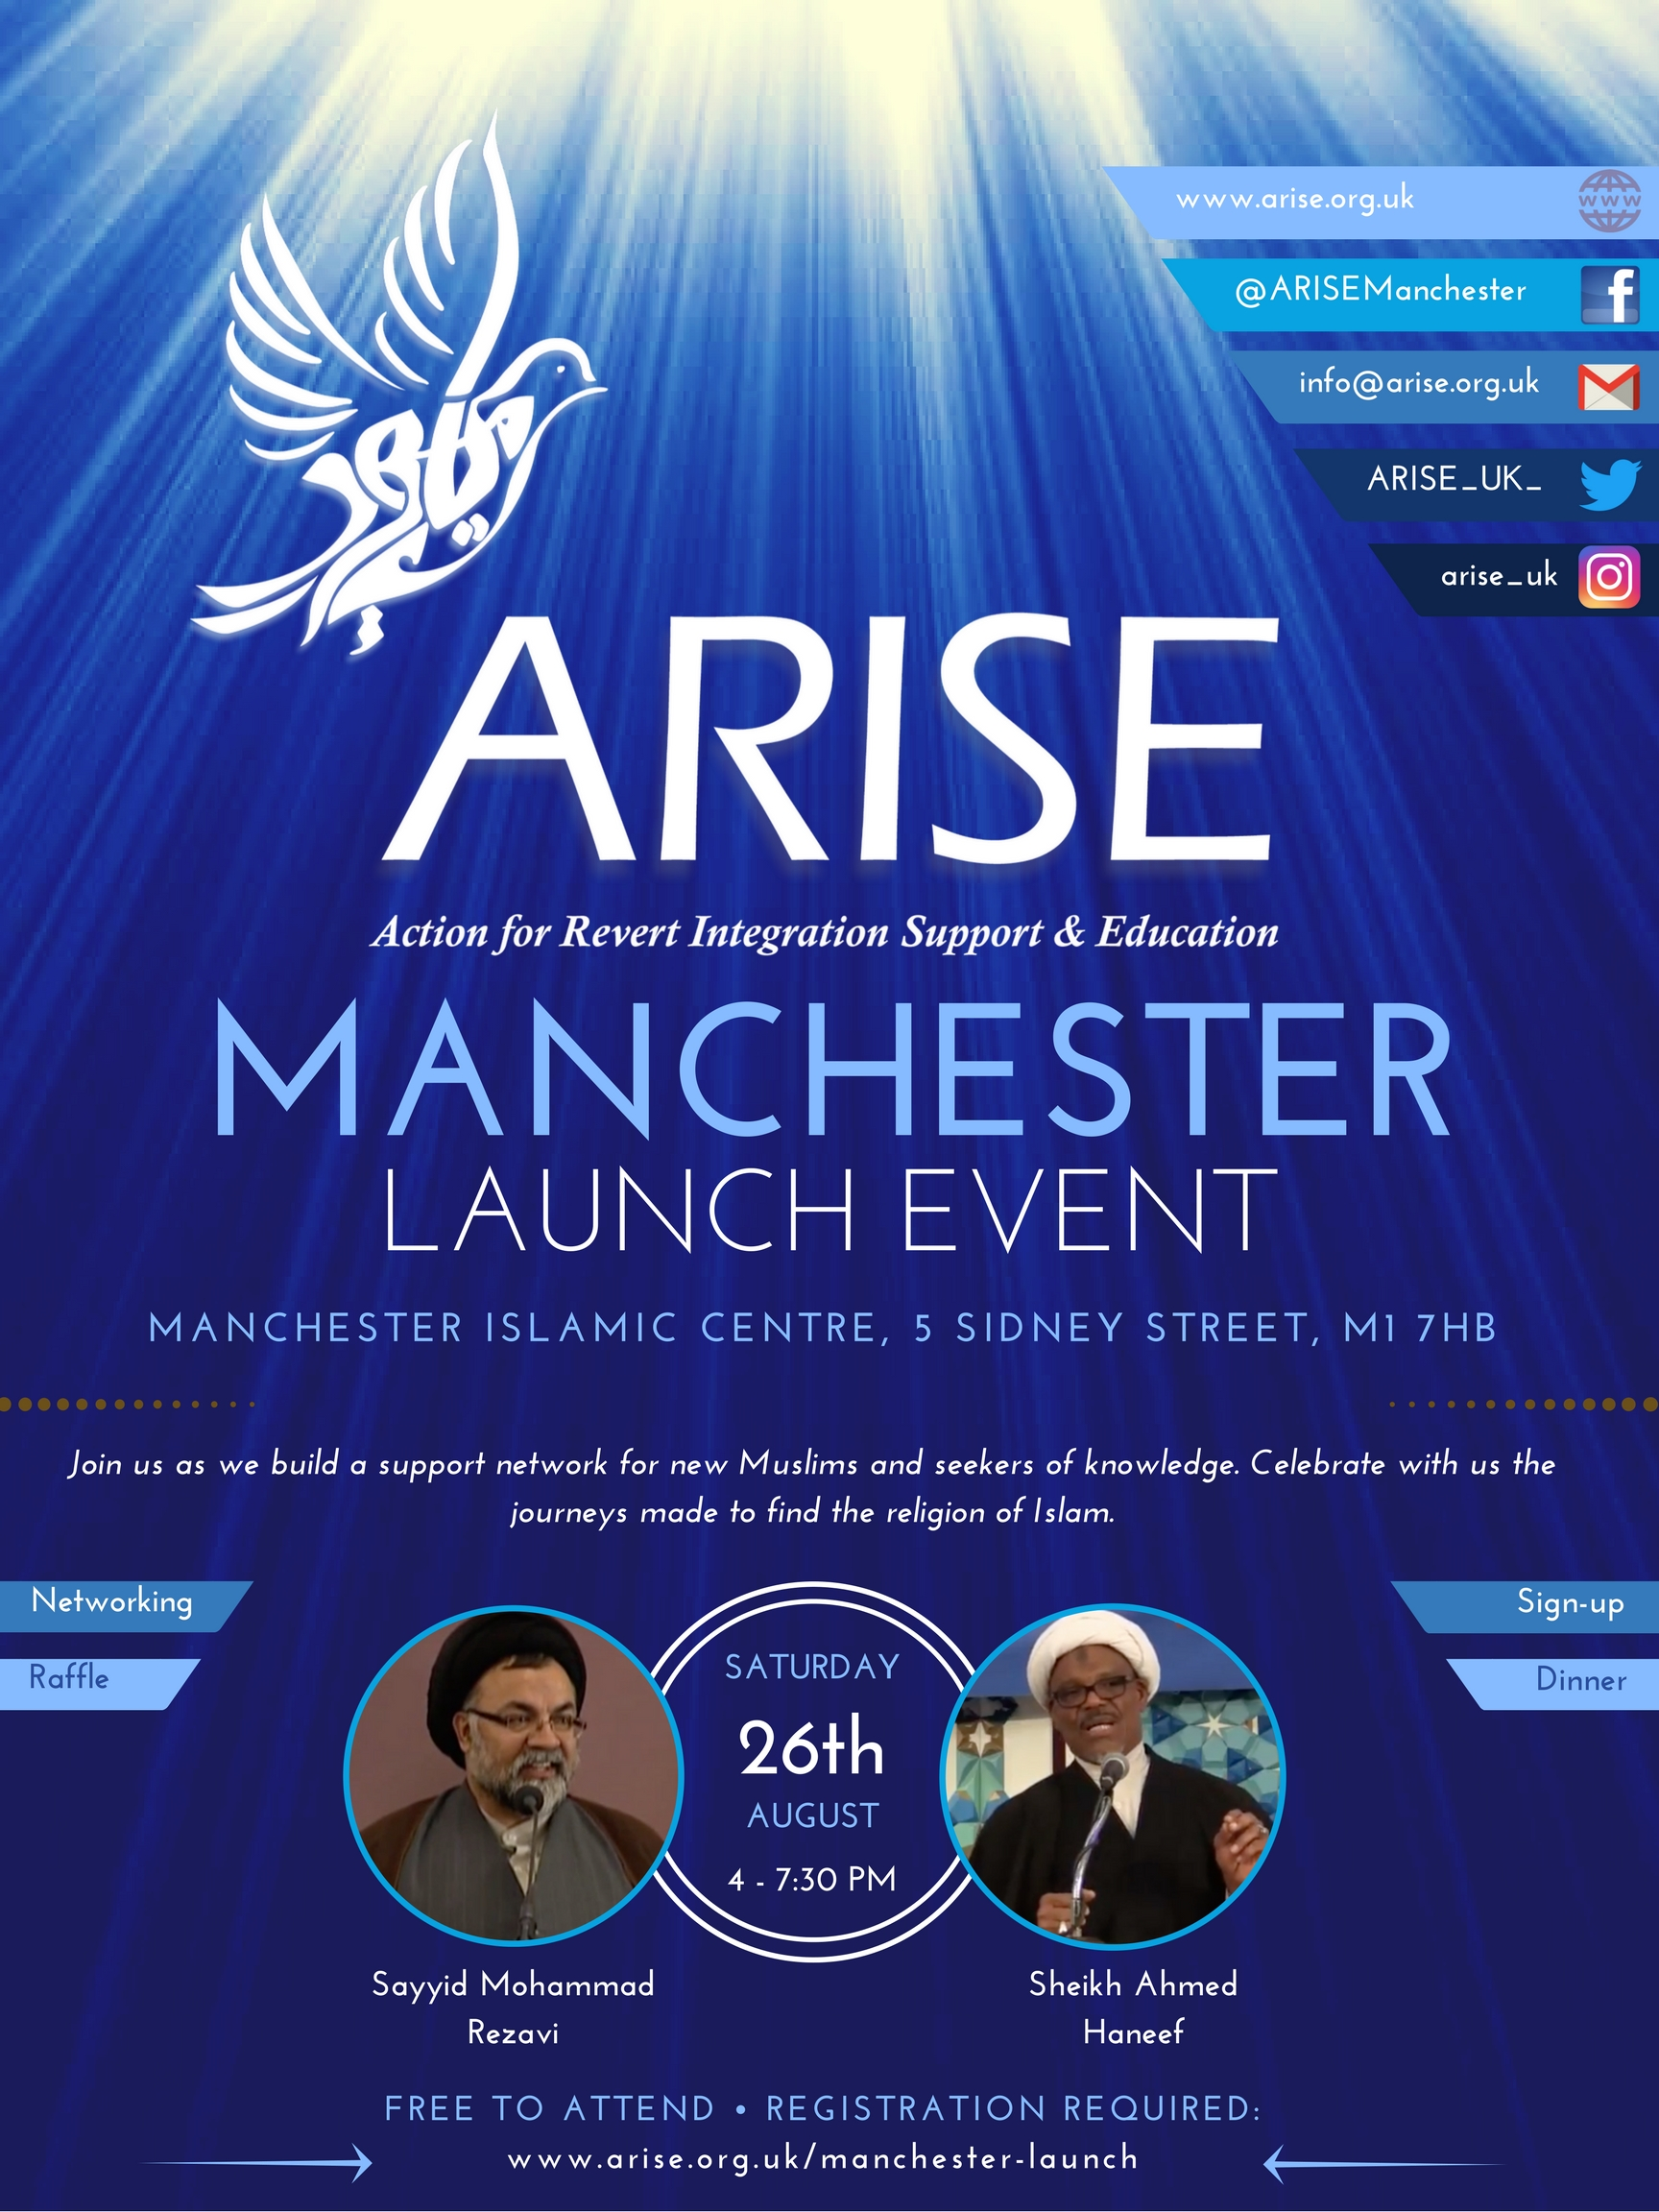 ARISE Manchester Launch